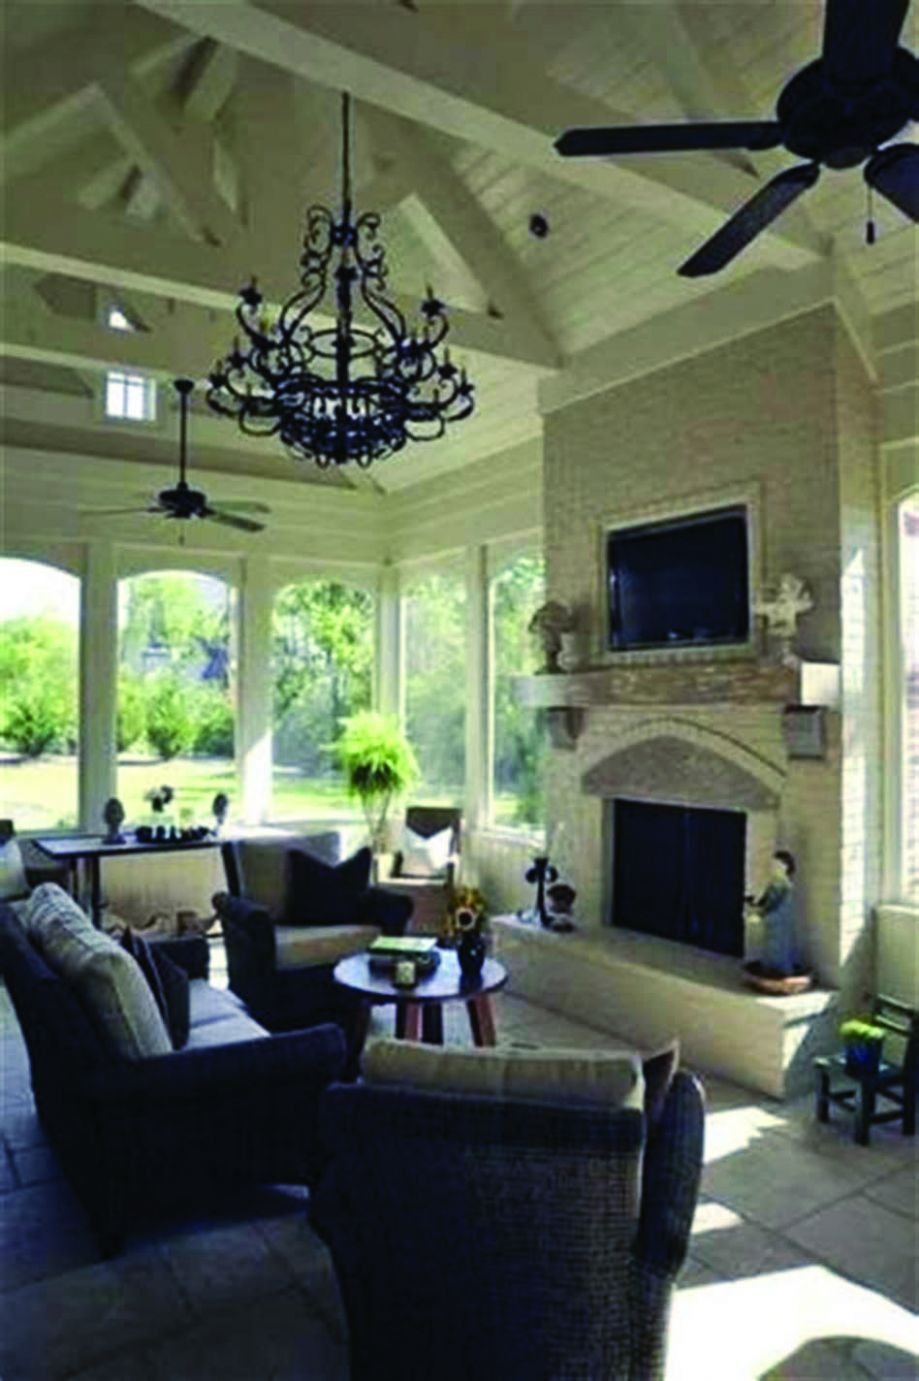 11 SUNROOM IDEAS FOR BLISSFUL LOUNGING (With images) | Screened ...